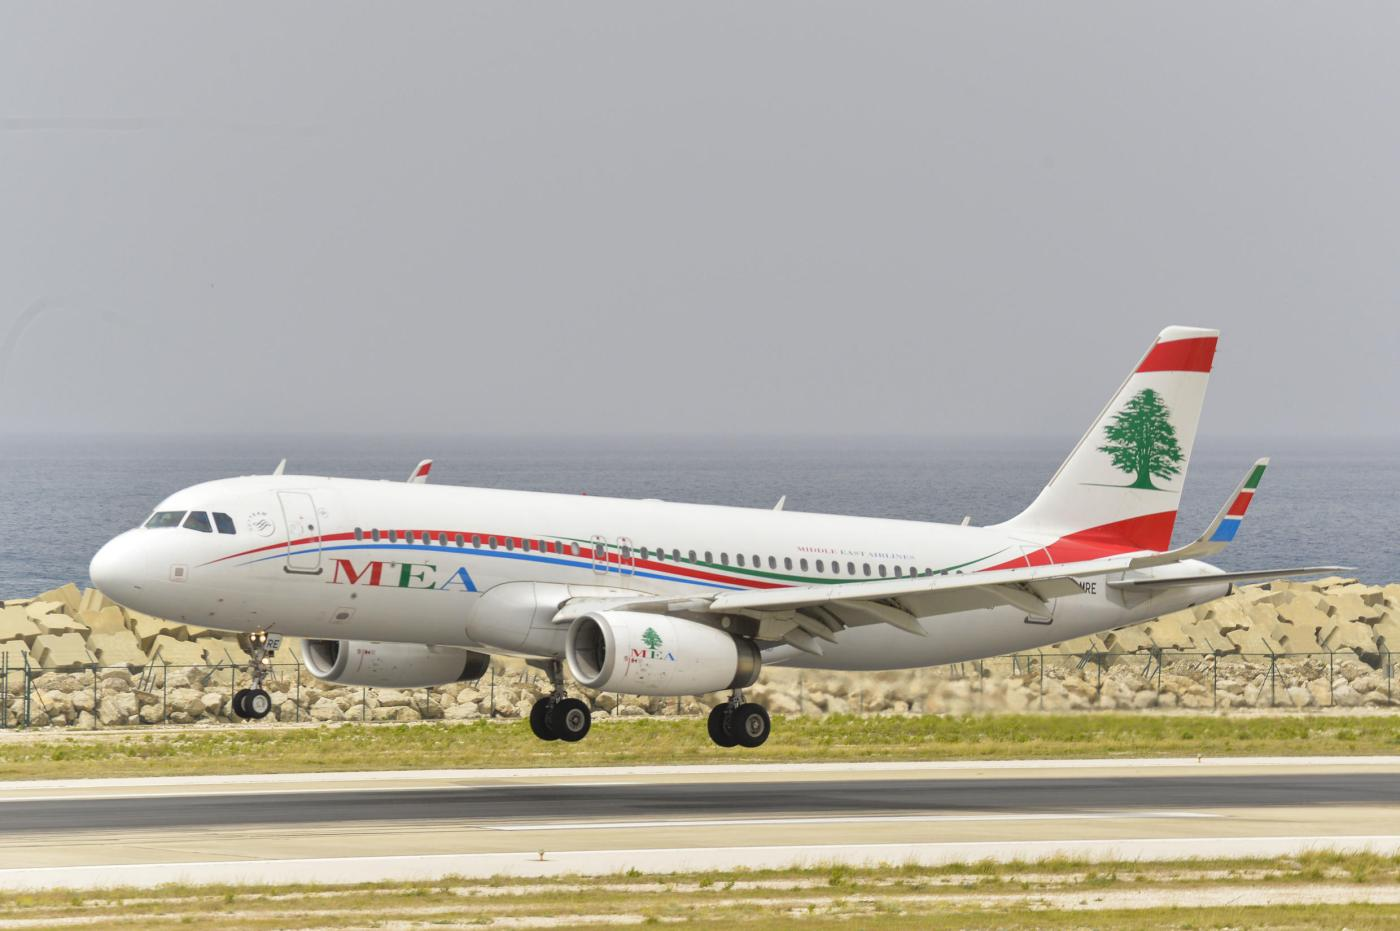 Un avion de Middle East Airlines, la compagnie aérienne du Liban.